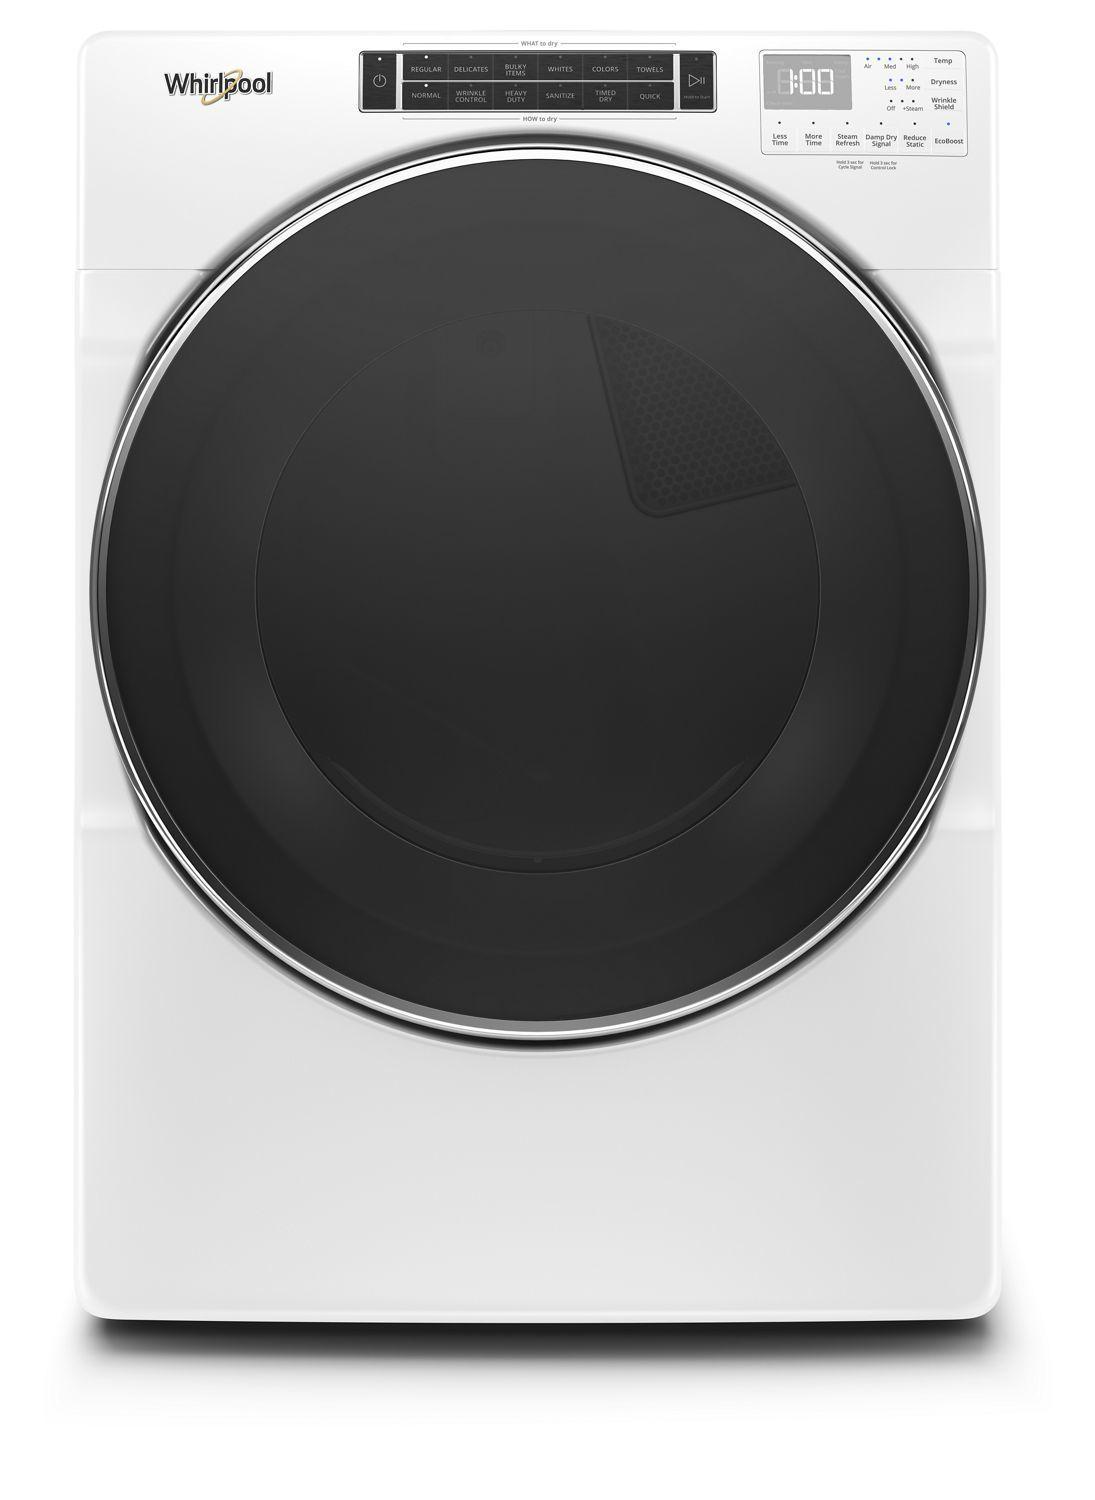 Whirlpool7.4 Cu. Ft. Front Load Gas Dryer With Steam Cycles White